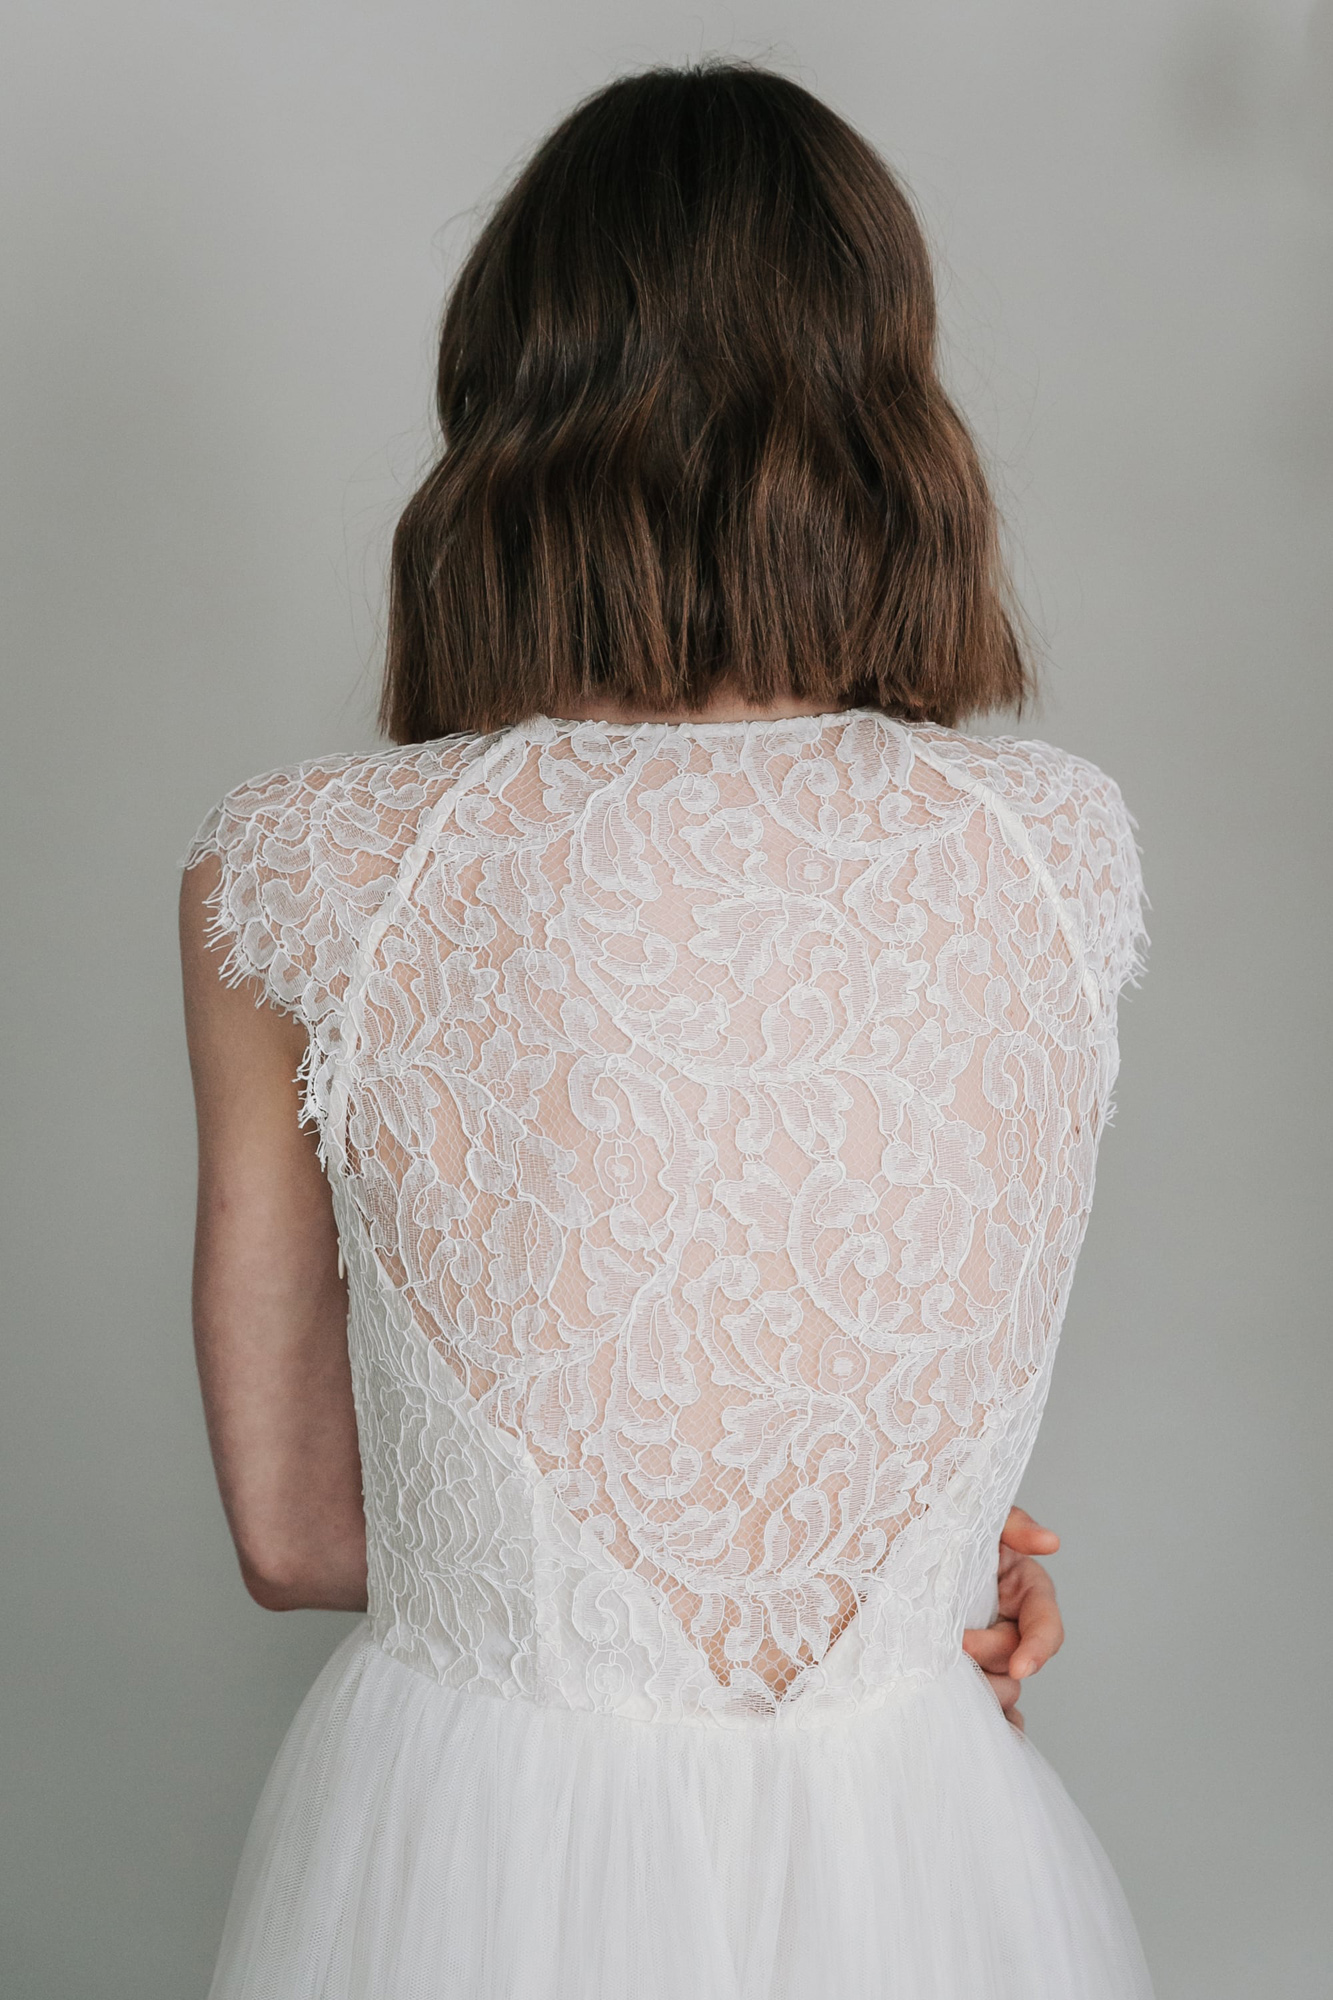 Kate-Beaumont-Sheffield-Mimosa-Lace-Tulle-Bohemian-Wedding-Gown-14.jpg